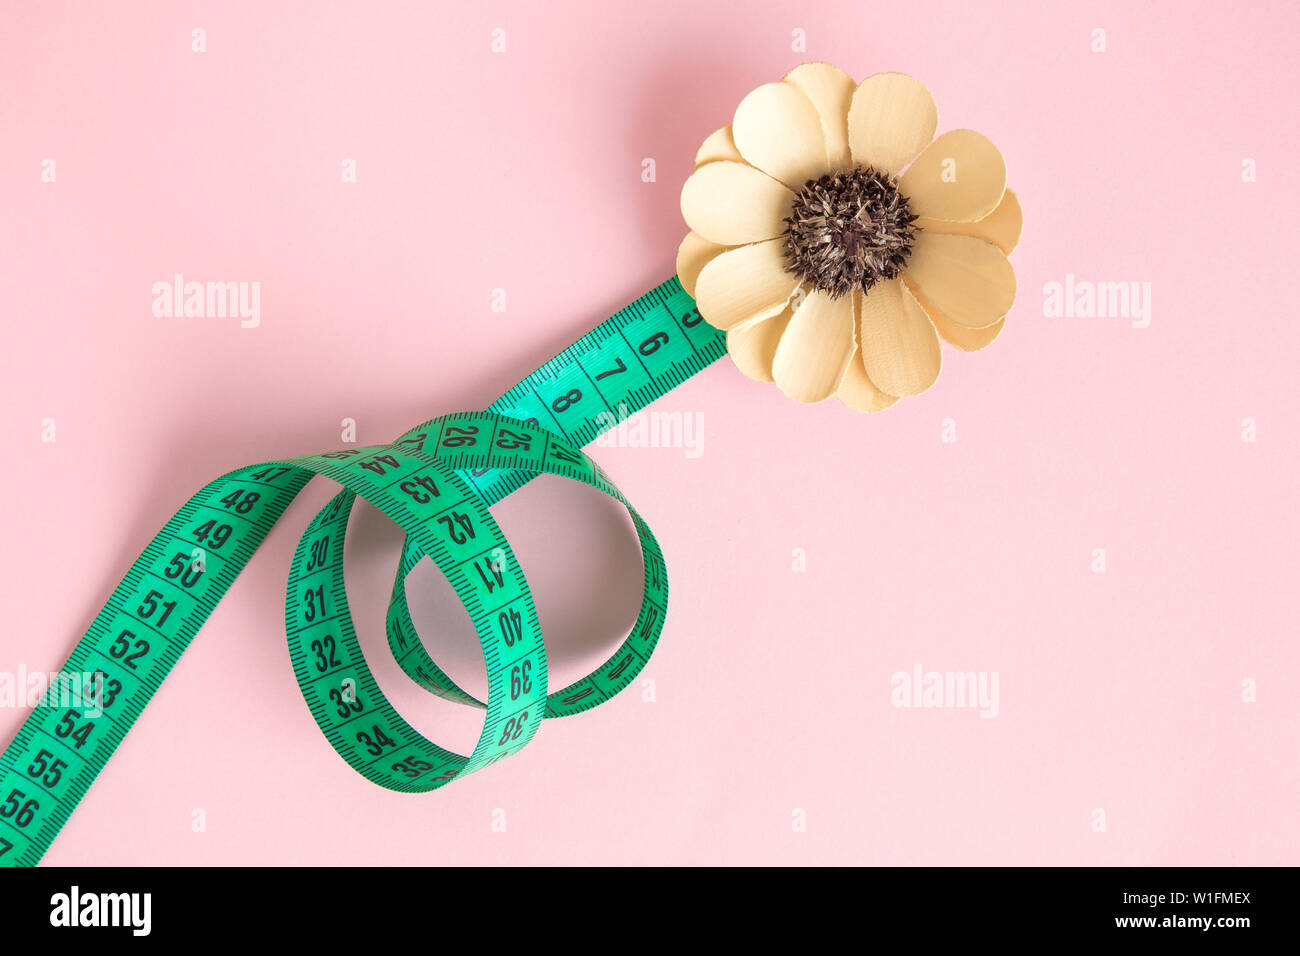 Flat lay of measuring tape in form of flower minimal creative concept. - Stock Image